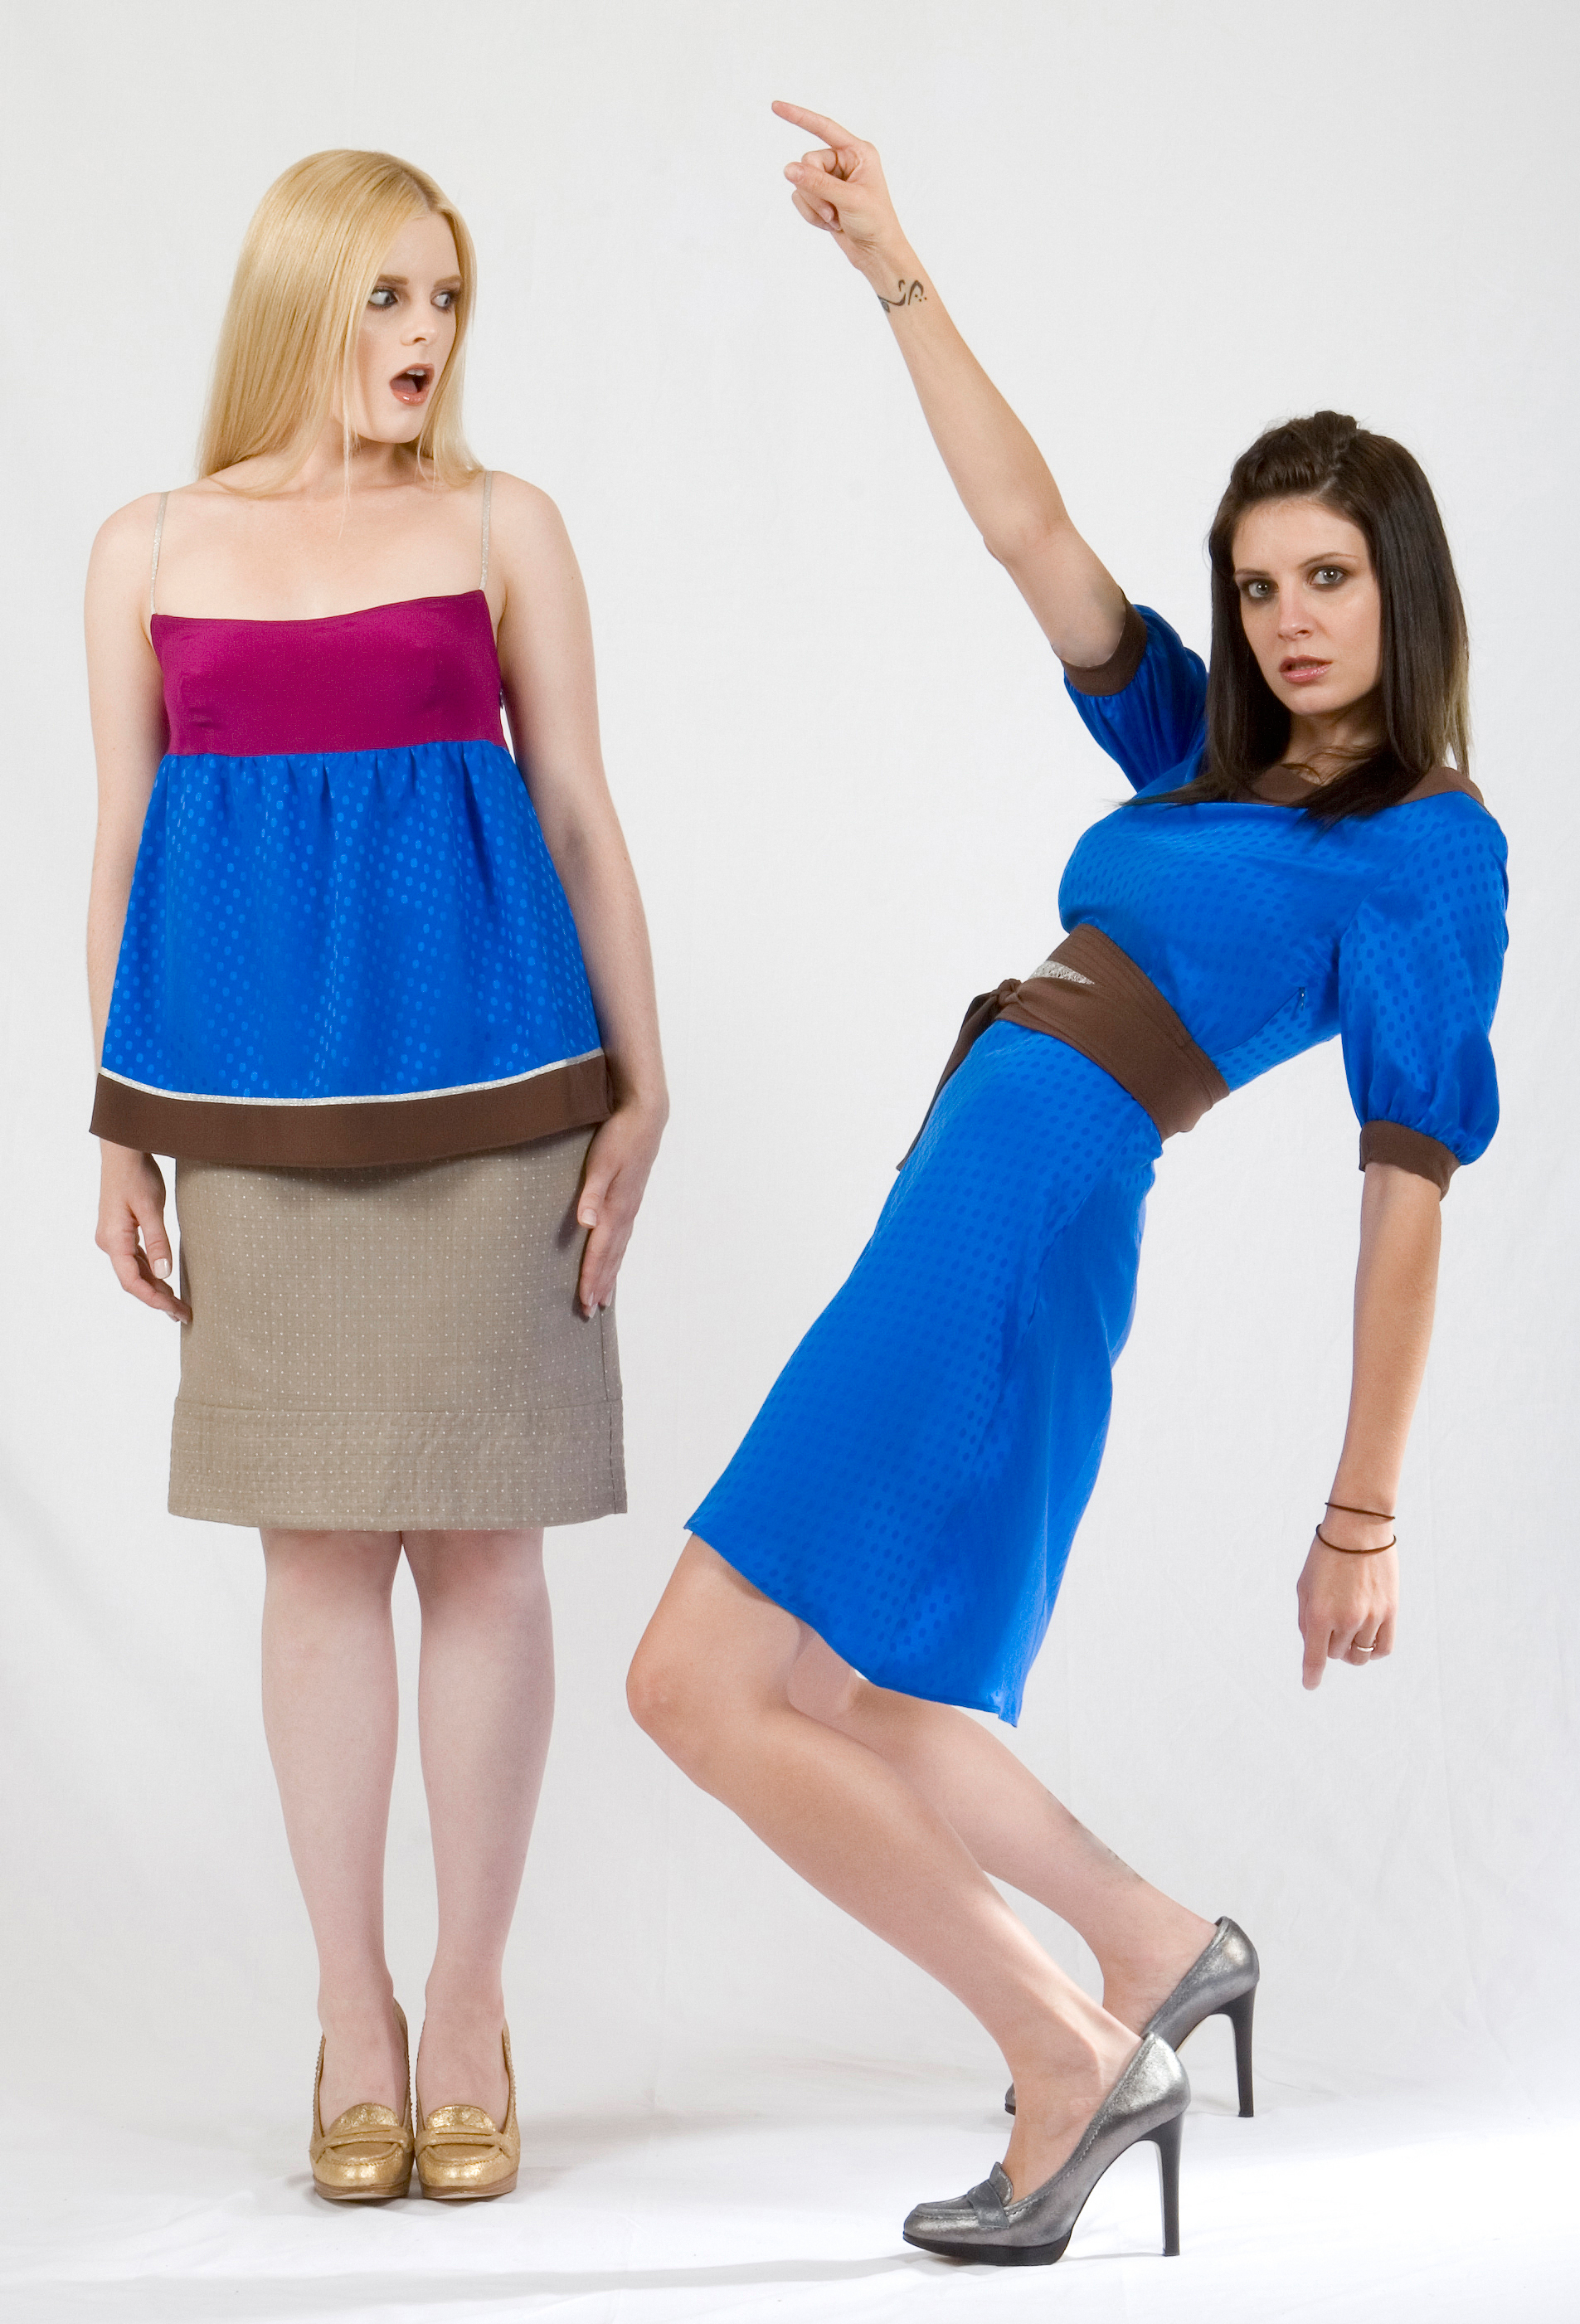 Color Blocked Cami Top in Silk Dotted Jaquard & Crepe w/ Metallic Trim  Quilt Stitched Pencil Skirt in Dotted Jaquard Suiting.   On the right:   Belted Scoop Dress in Silk Dotted Jaquard & Crepe w/ Metallic Lace Trim.